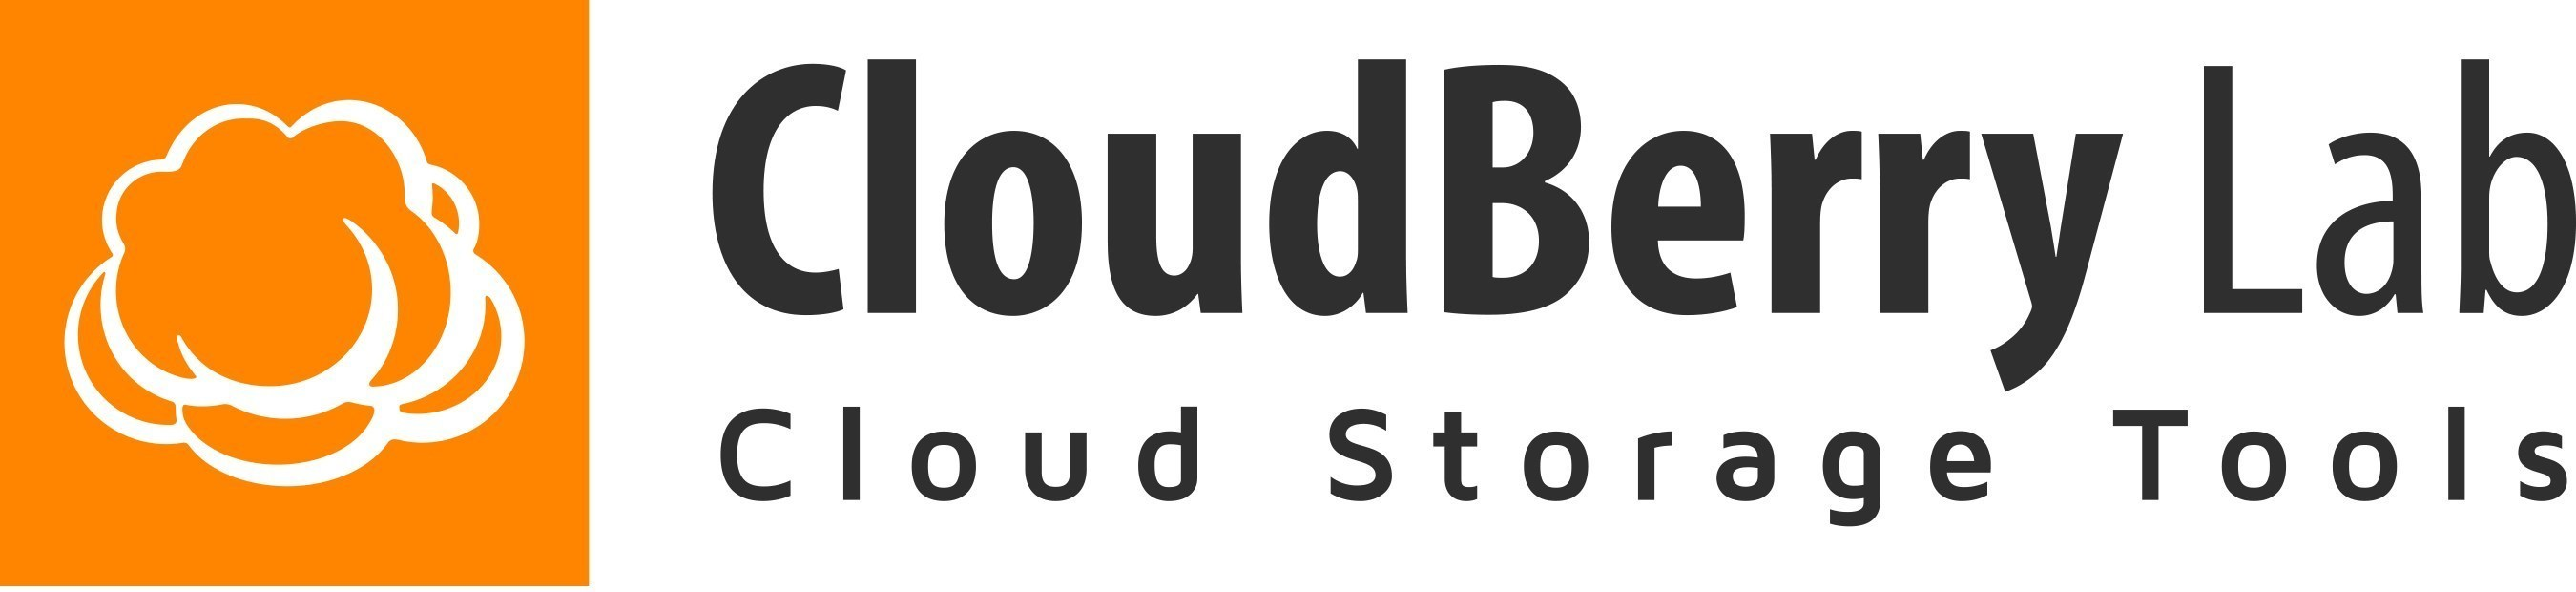 CloudBerry Lab(TM) provides cloud-based backup and file management services to small and mid-sized businesses (SMBs).